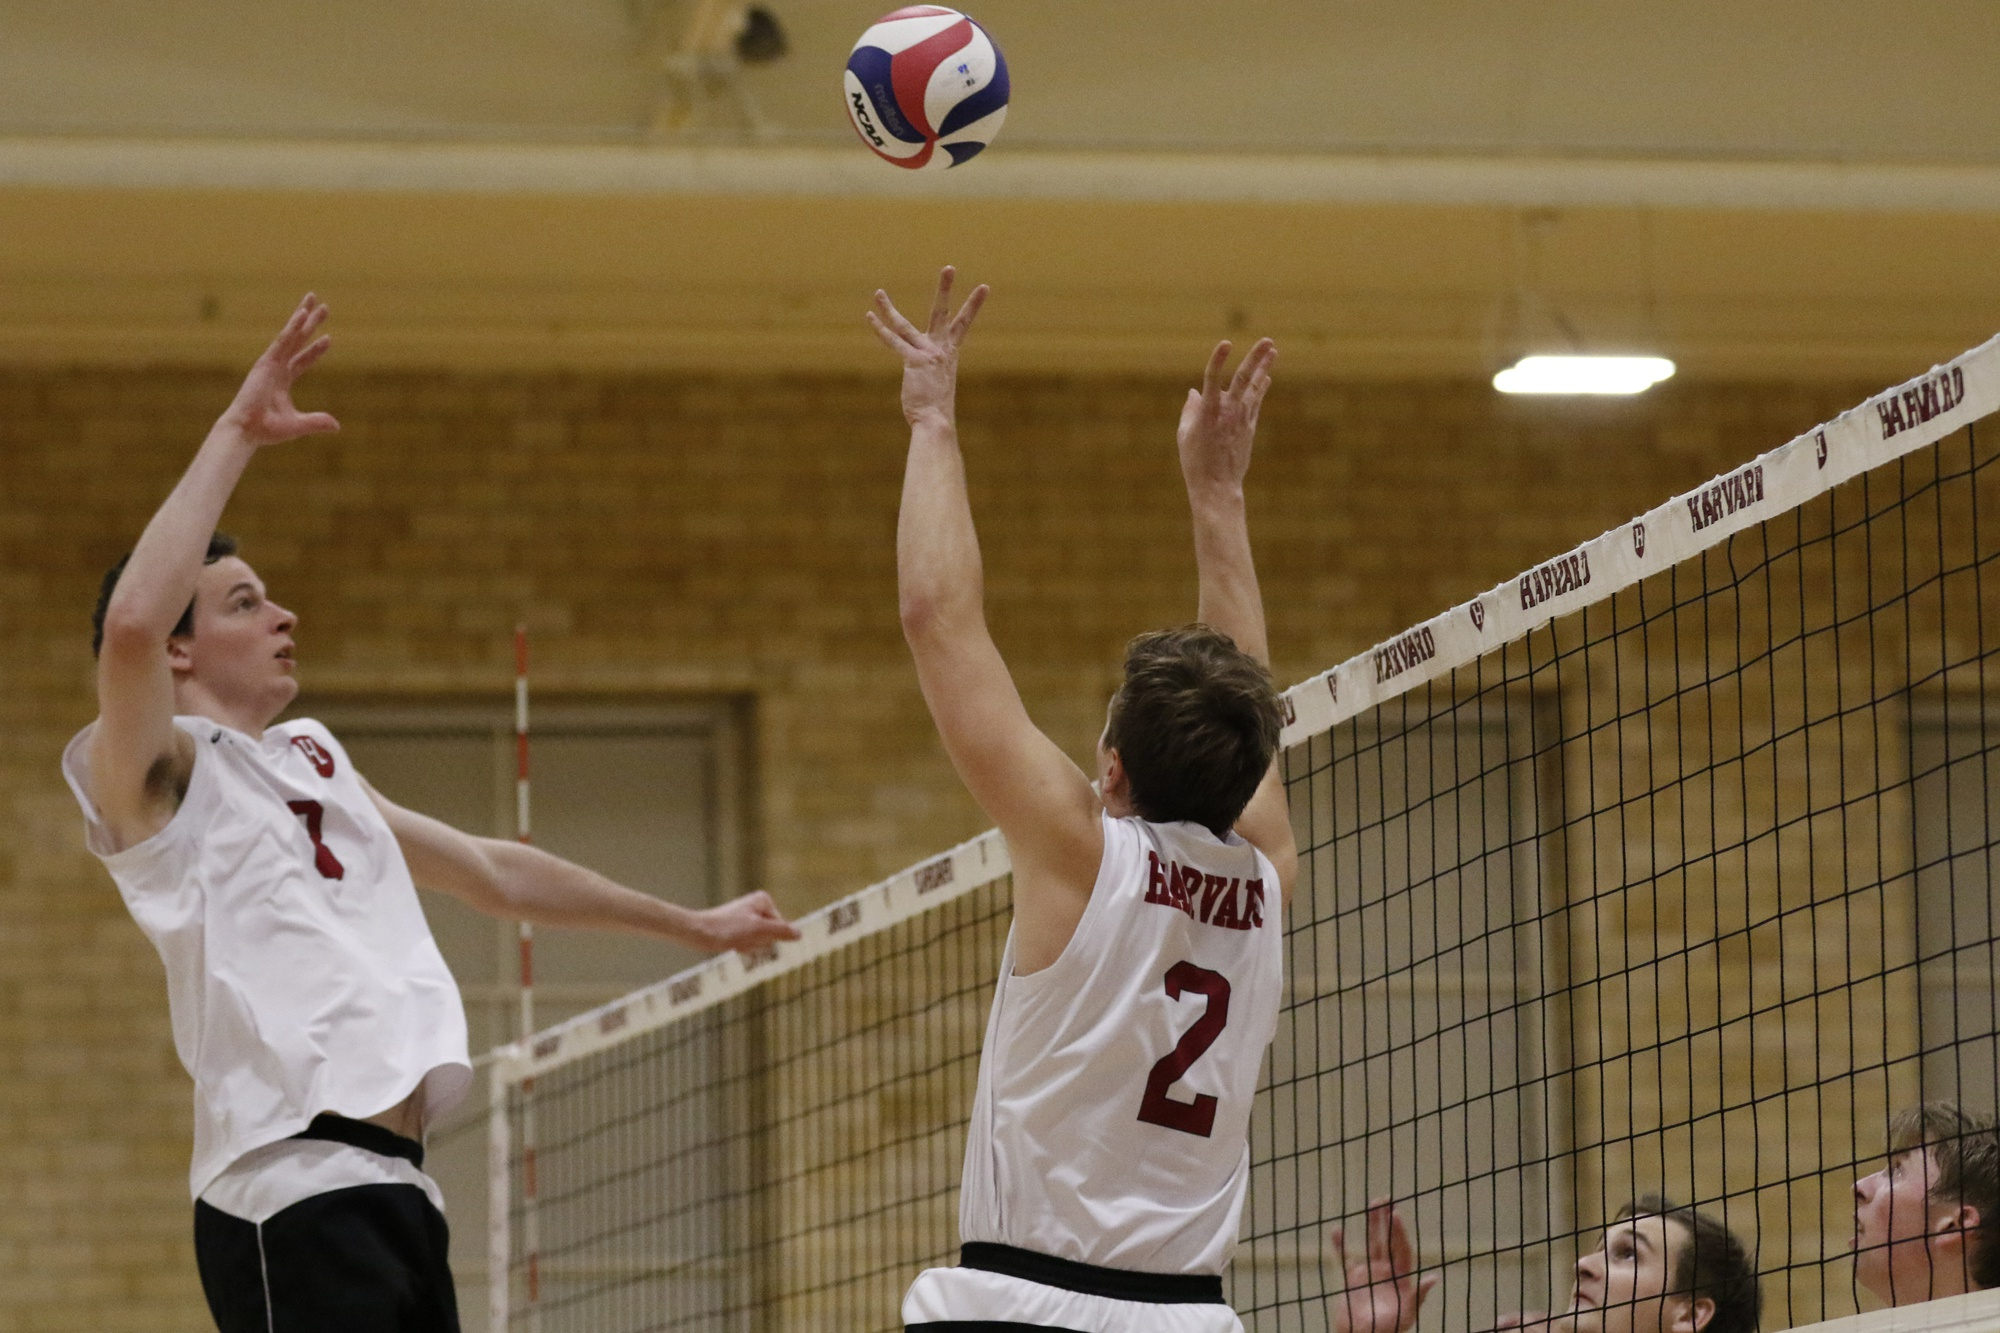 Junior middle blocker Trevor Dow (8) rises for a spike attempt in previous action against Princeton.